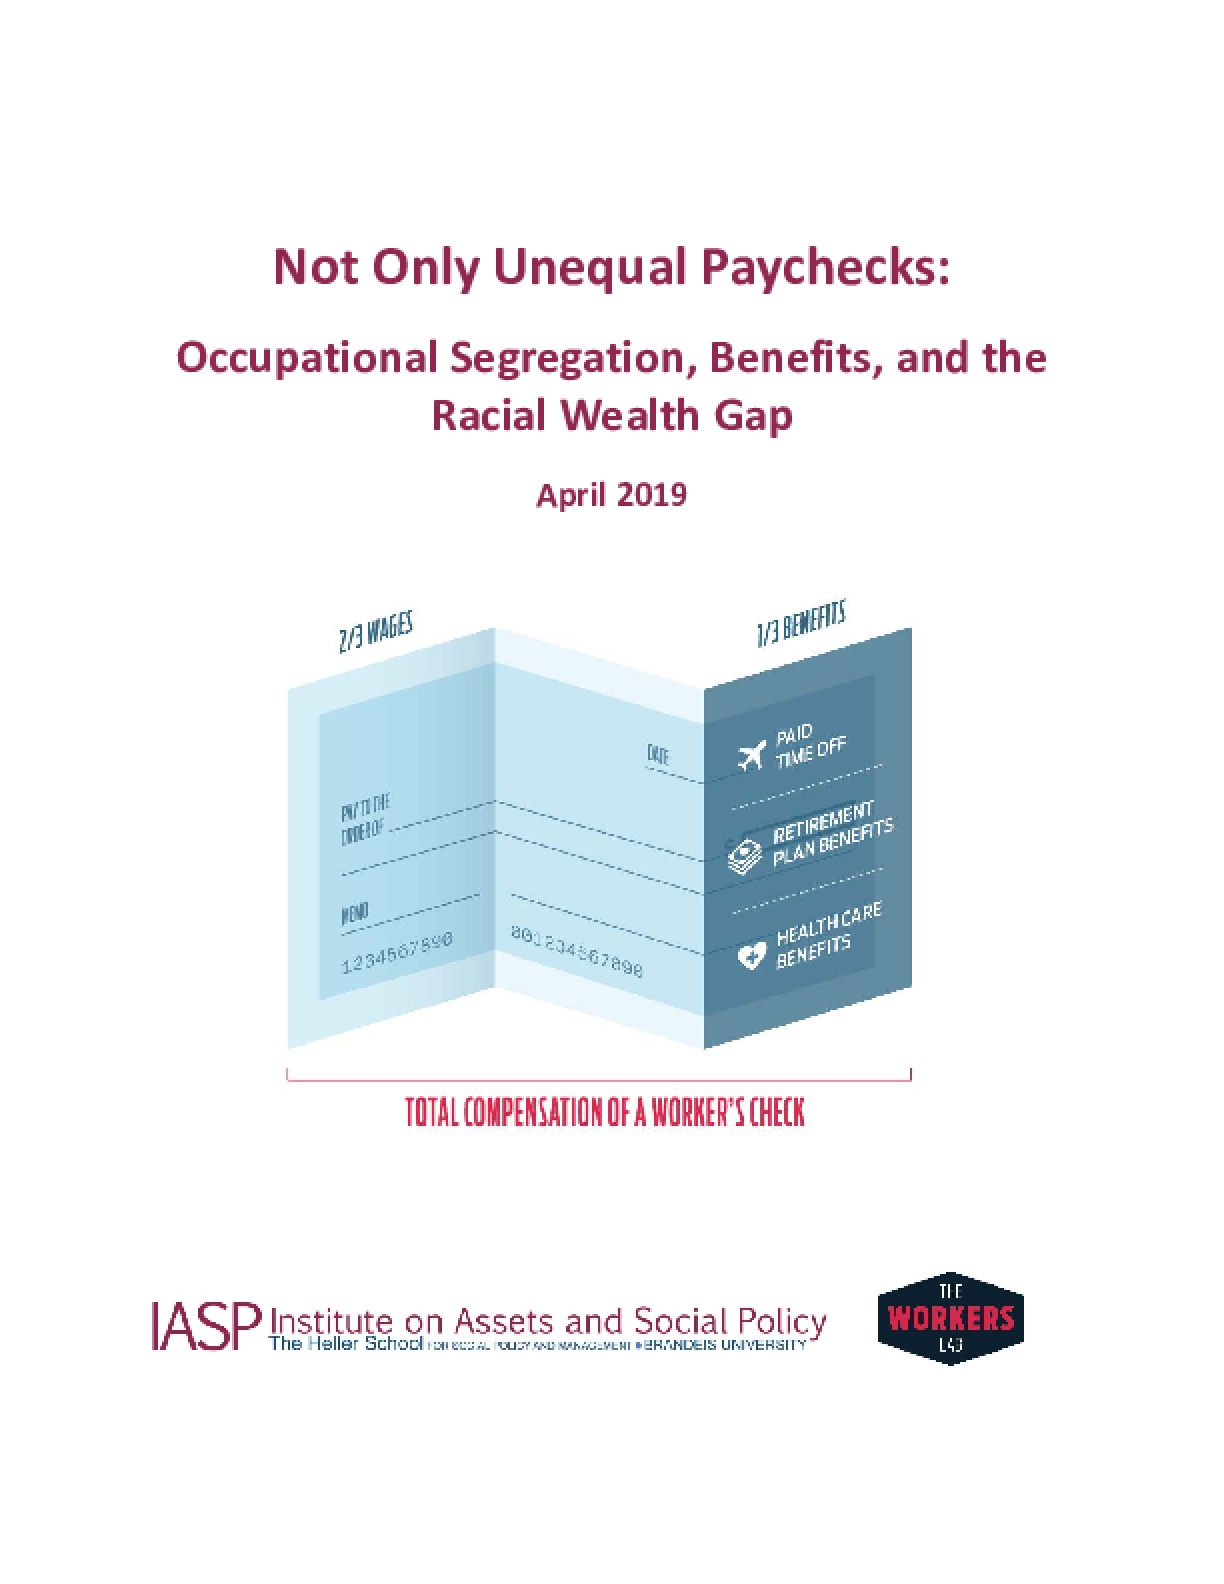 Not Only Unequal Paychecks: Occupational Segregation, Benefits, and the Racial Wealth Gap